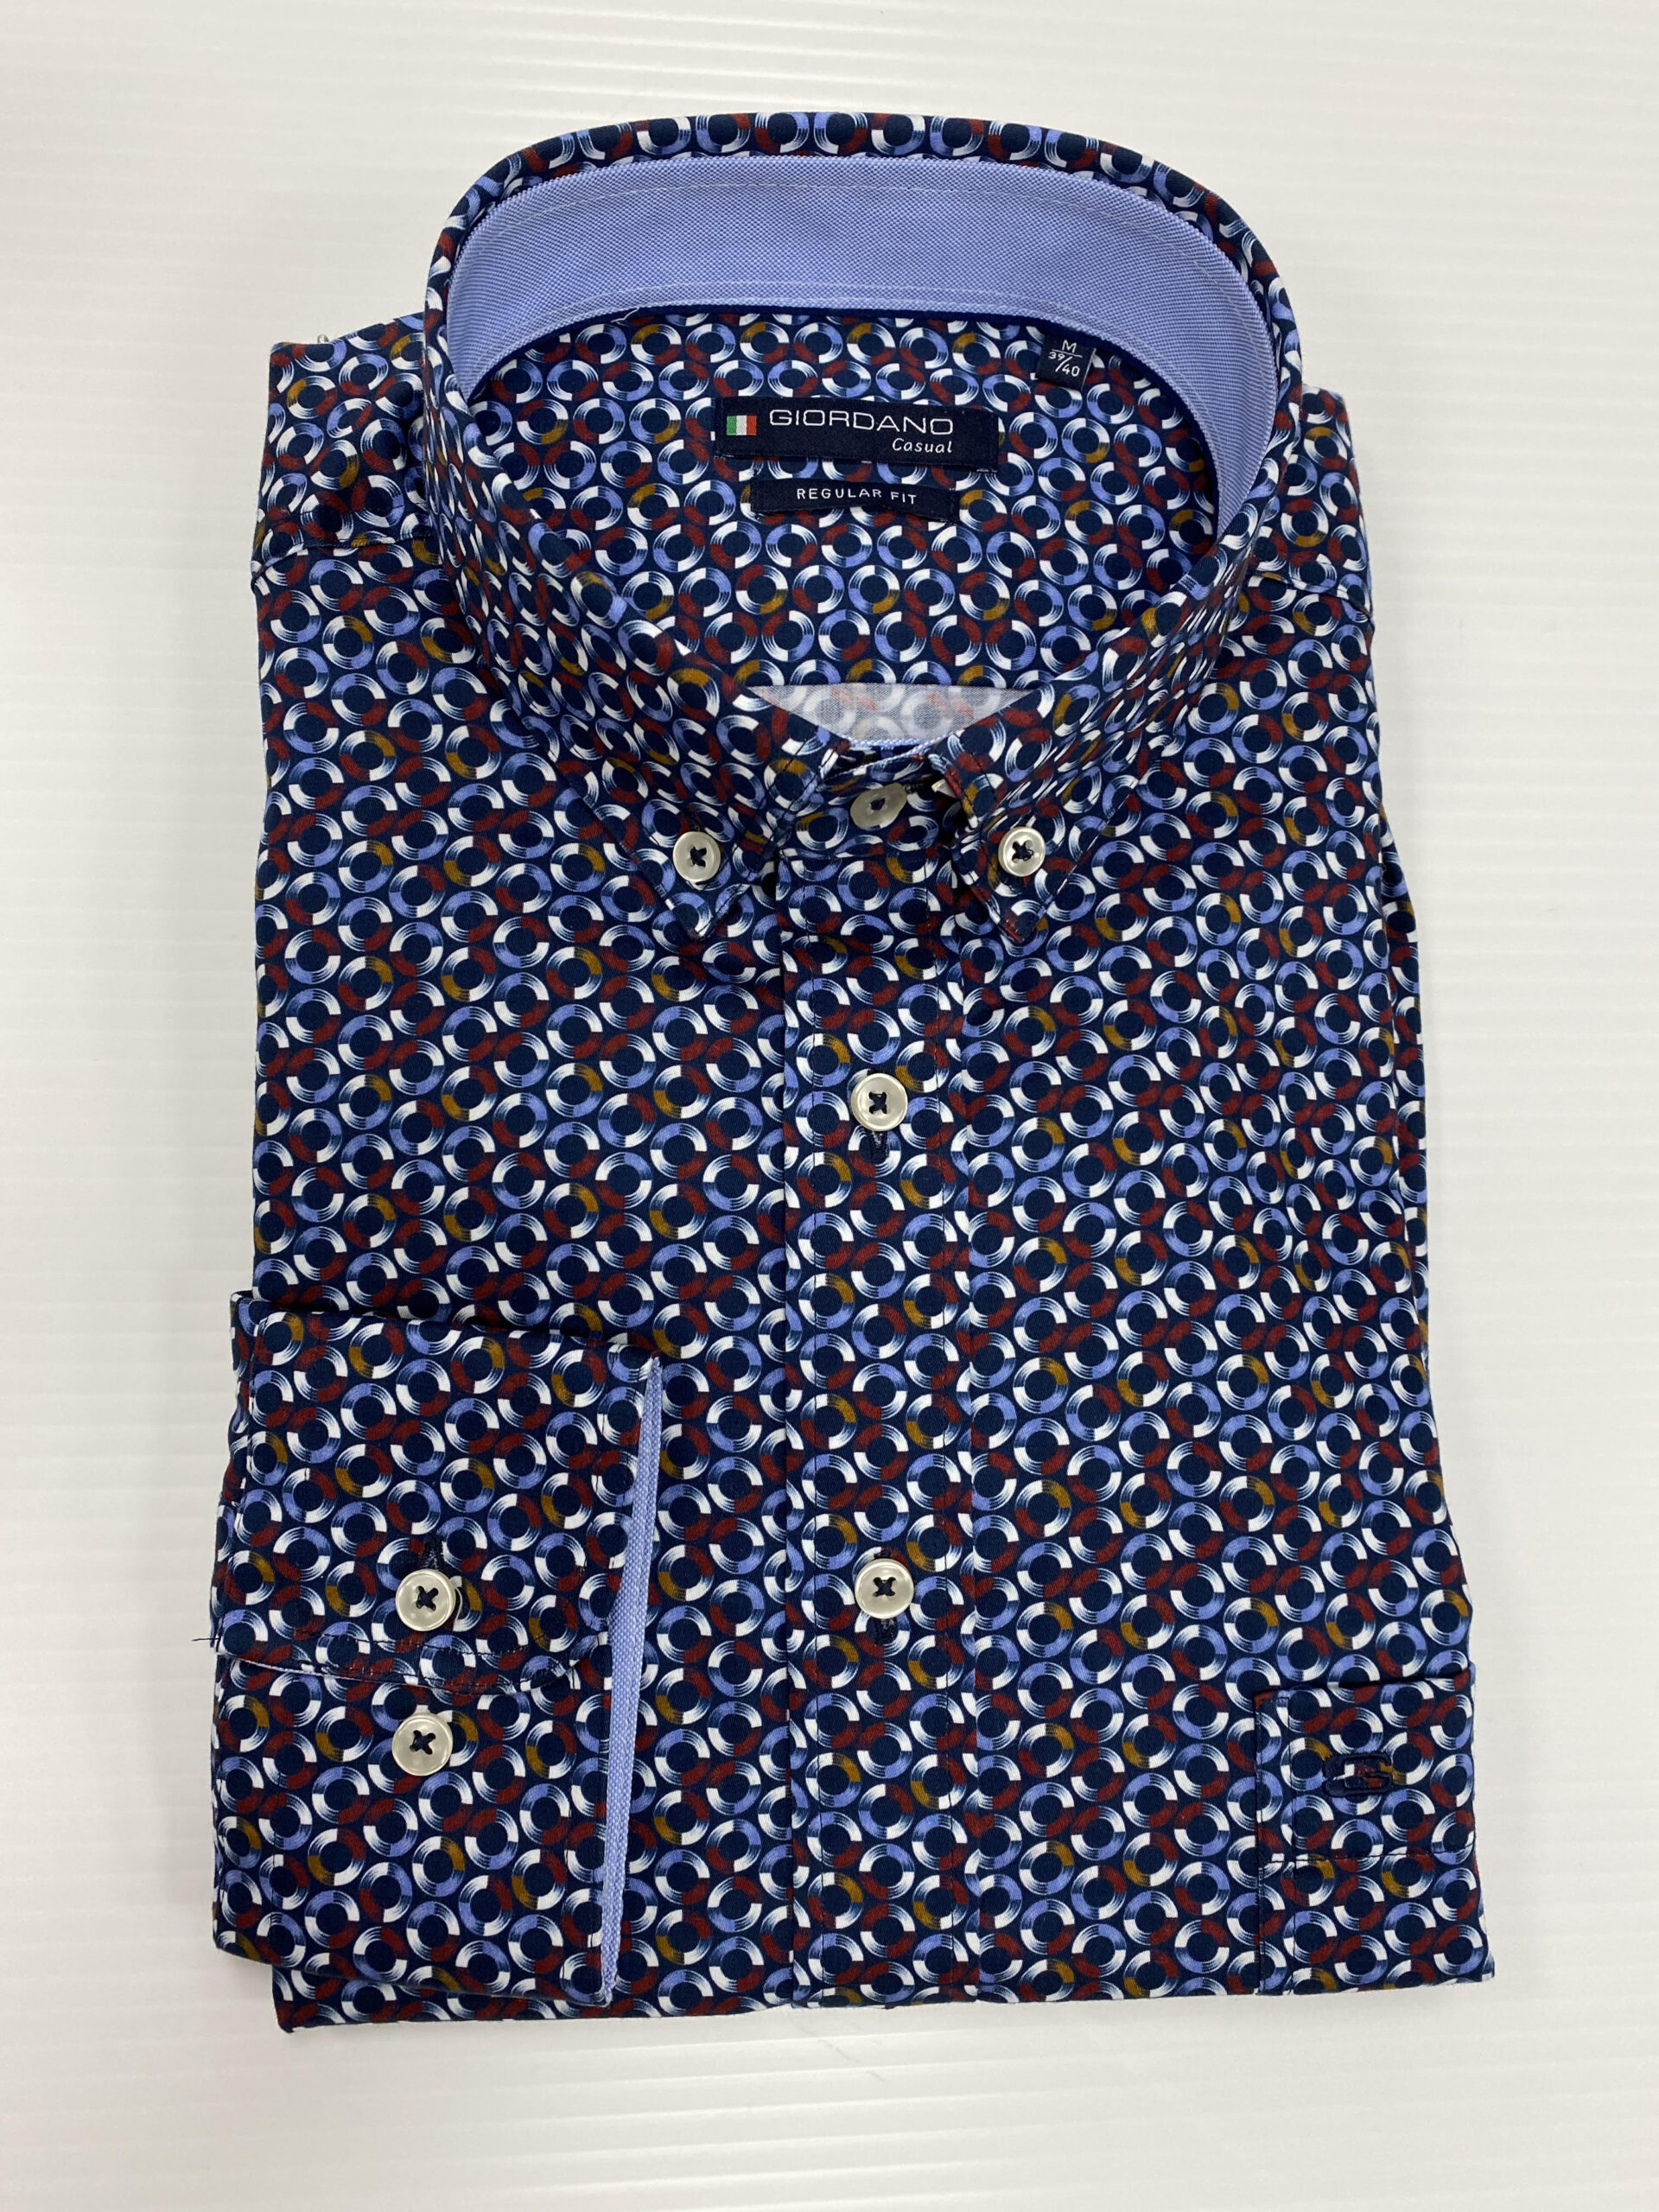 GIORDANO | Casual Regular Fit Shirt - Navy and Red